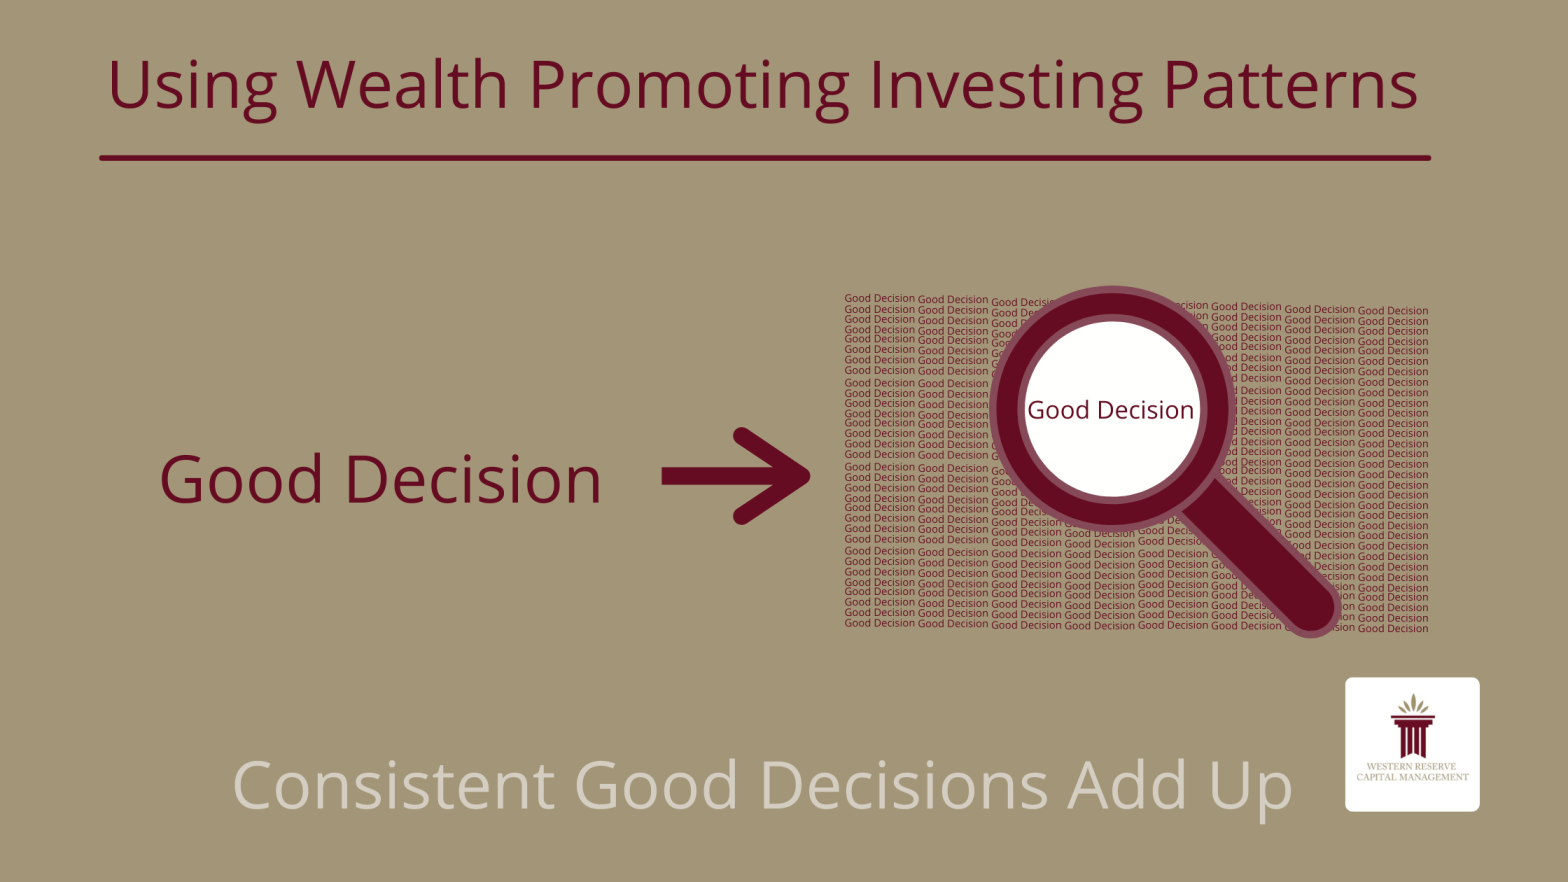 Using Wealth Promoting Investing Patterns